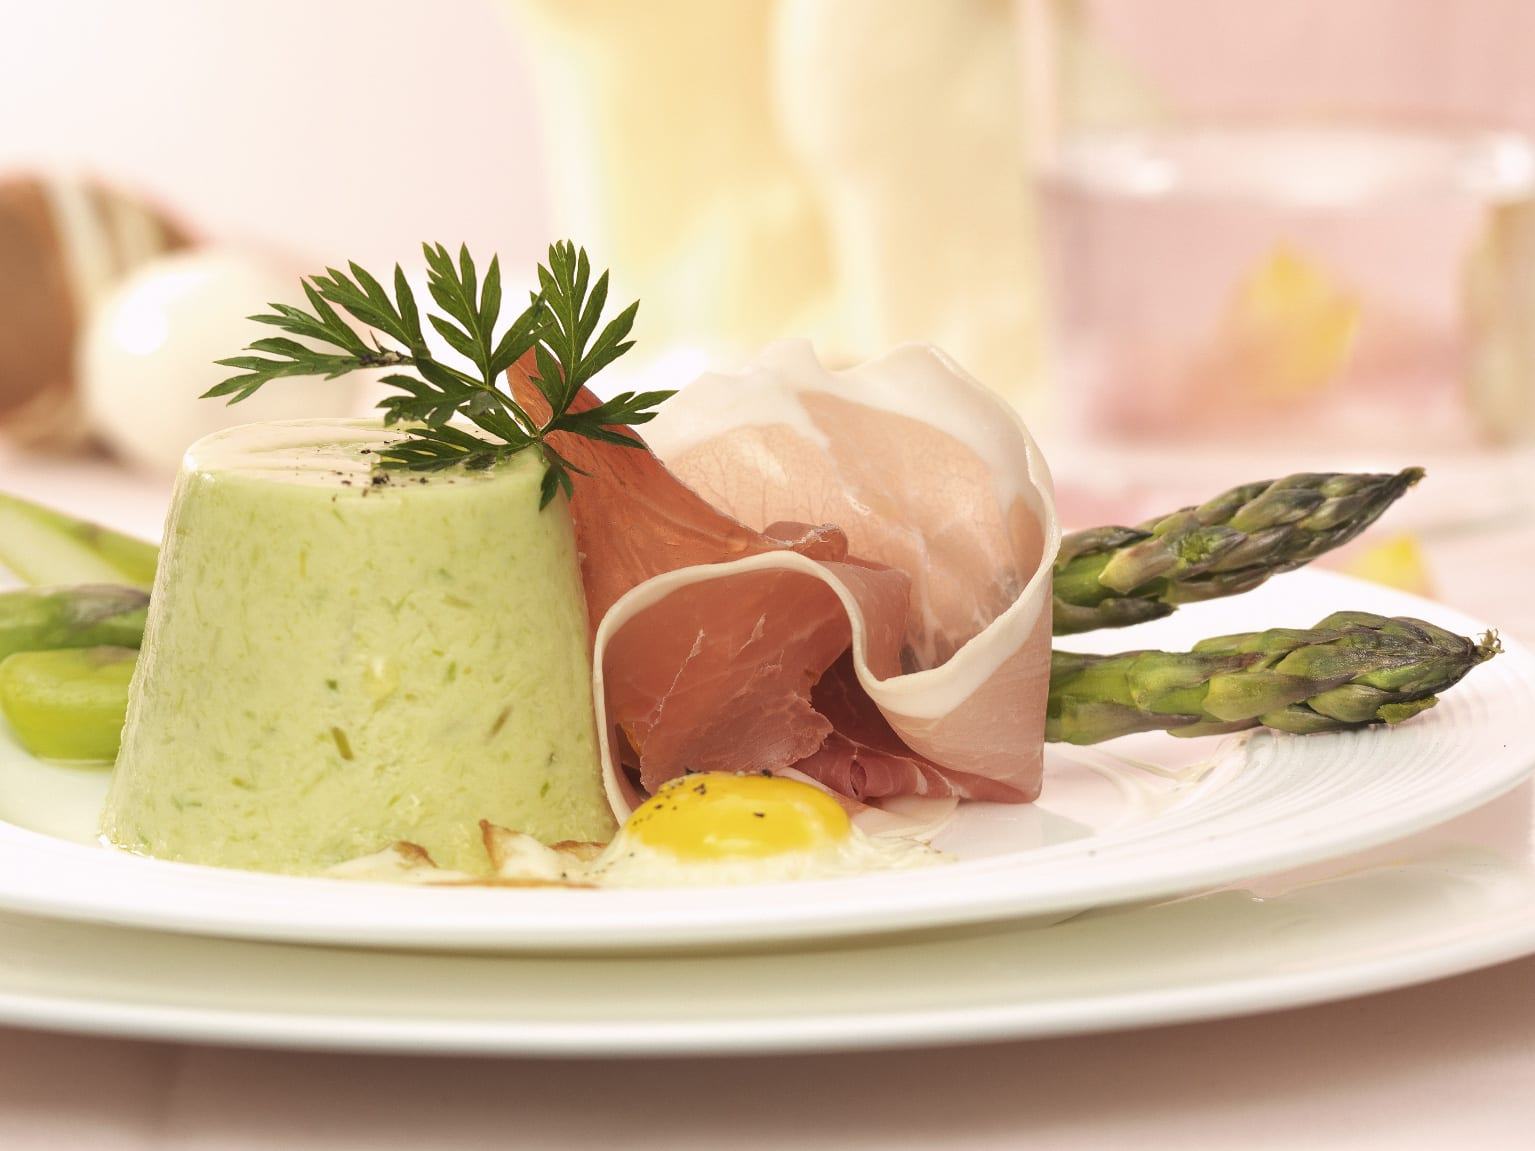 Timbales d'asperges vertes